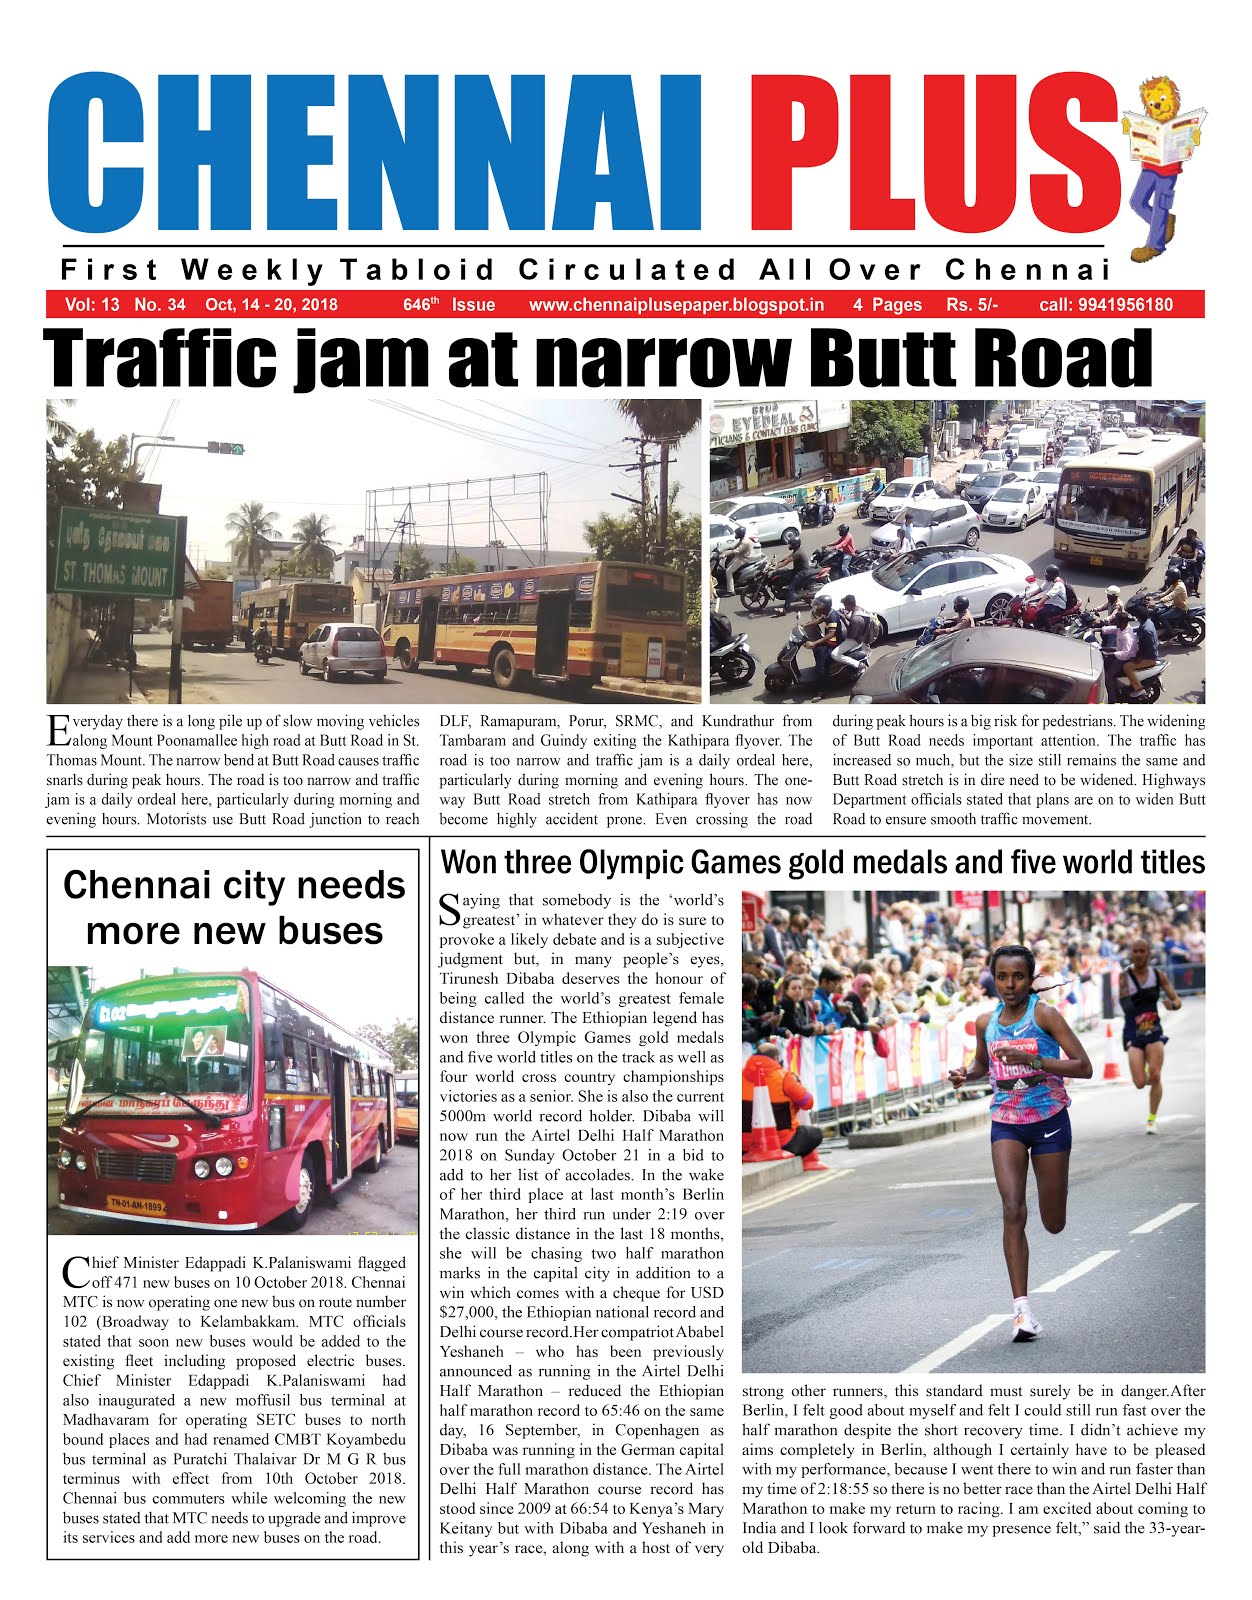 Chennai Plus_14.10.2018_Issue